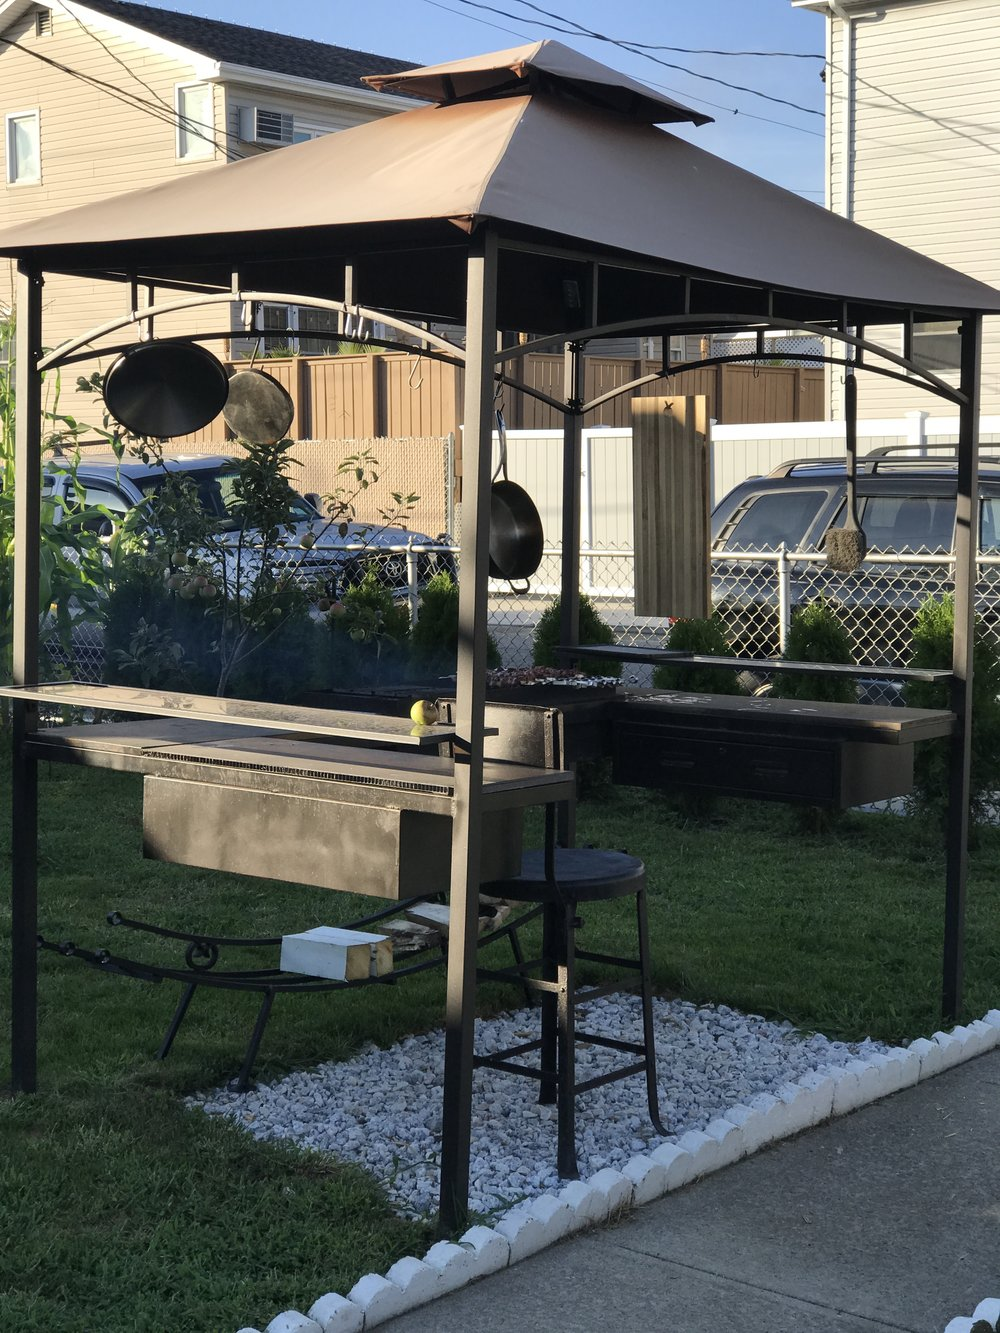 Steel Gazebo with Grill